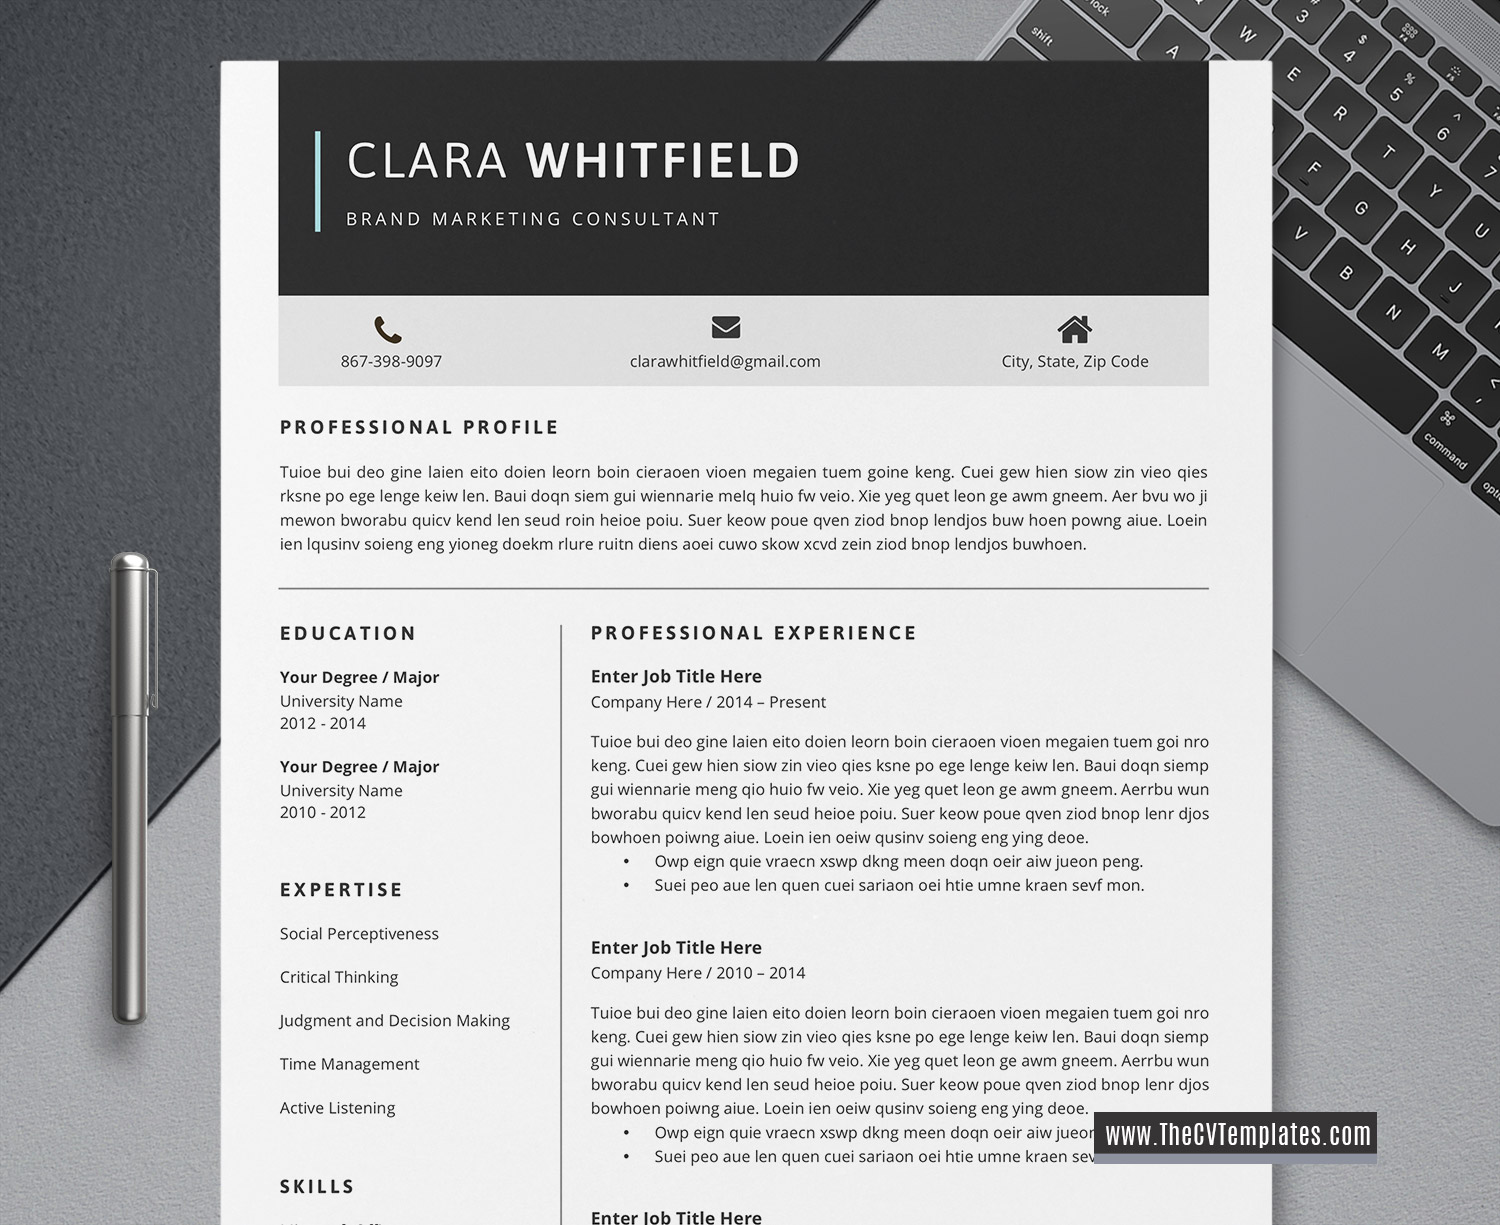 2020 Simple Cv Template Clean Resume Minimalist Resume Editable